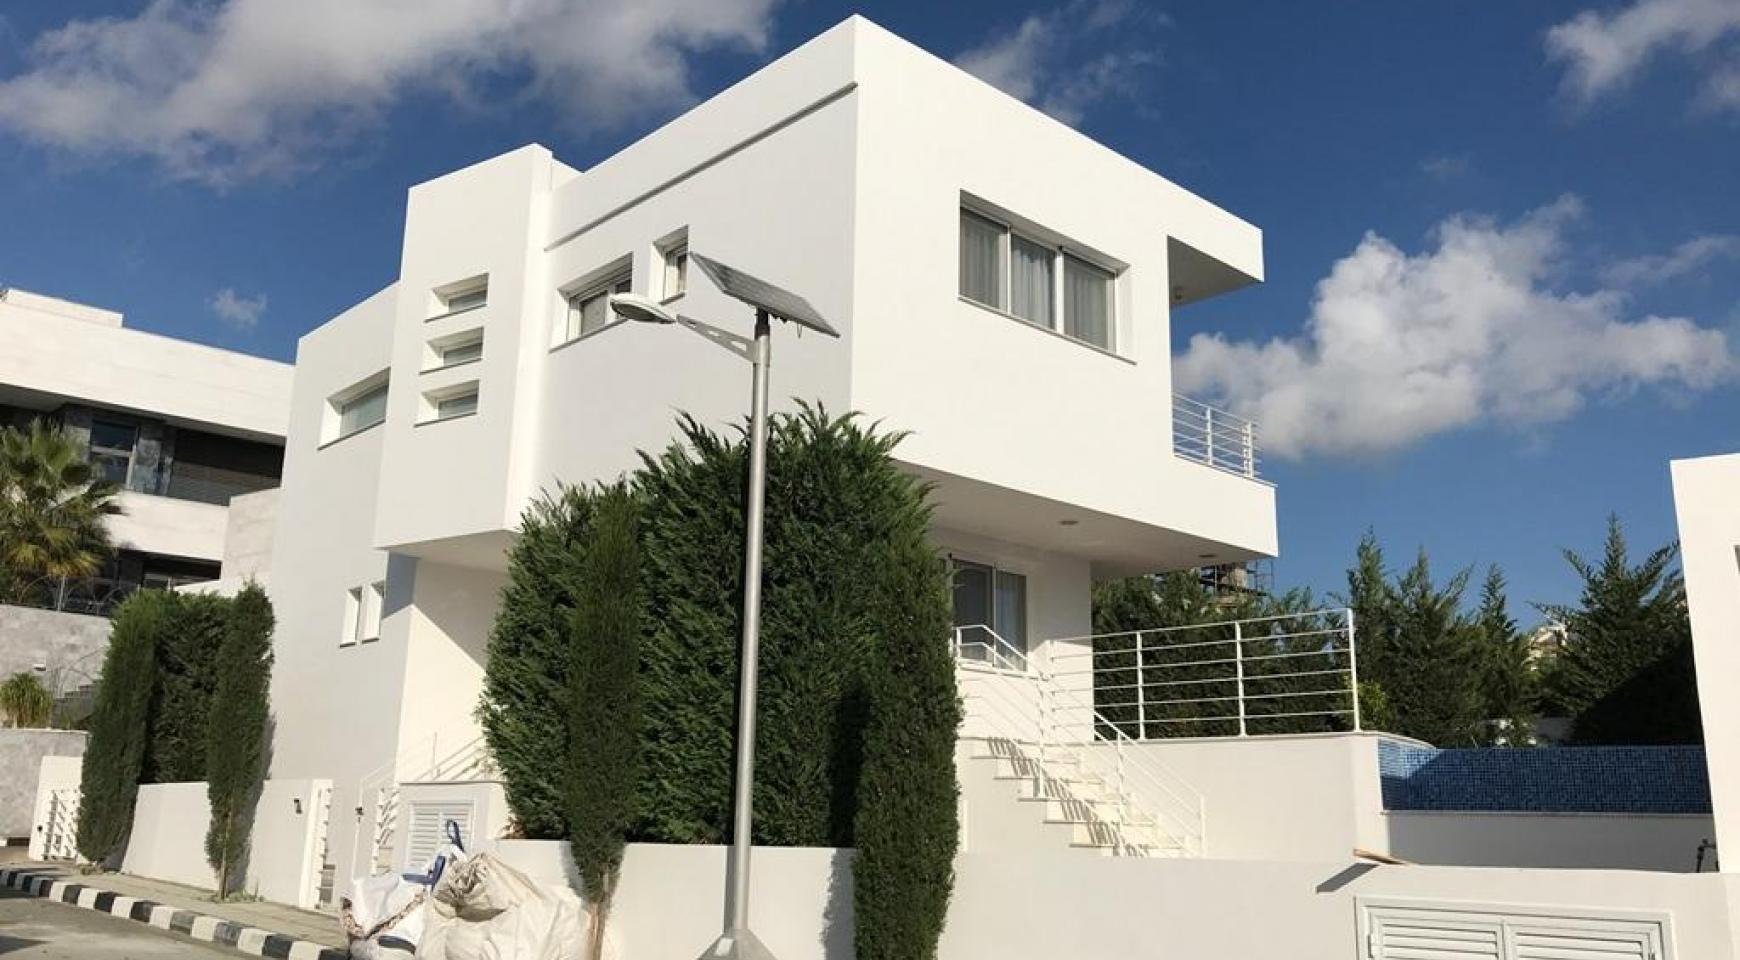 Contemporary 4 Bedroom Villa with Sea Views in Agios Tychonas - 2